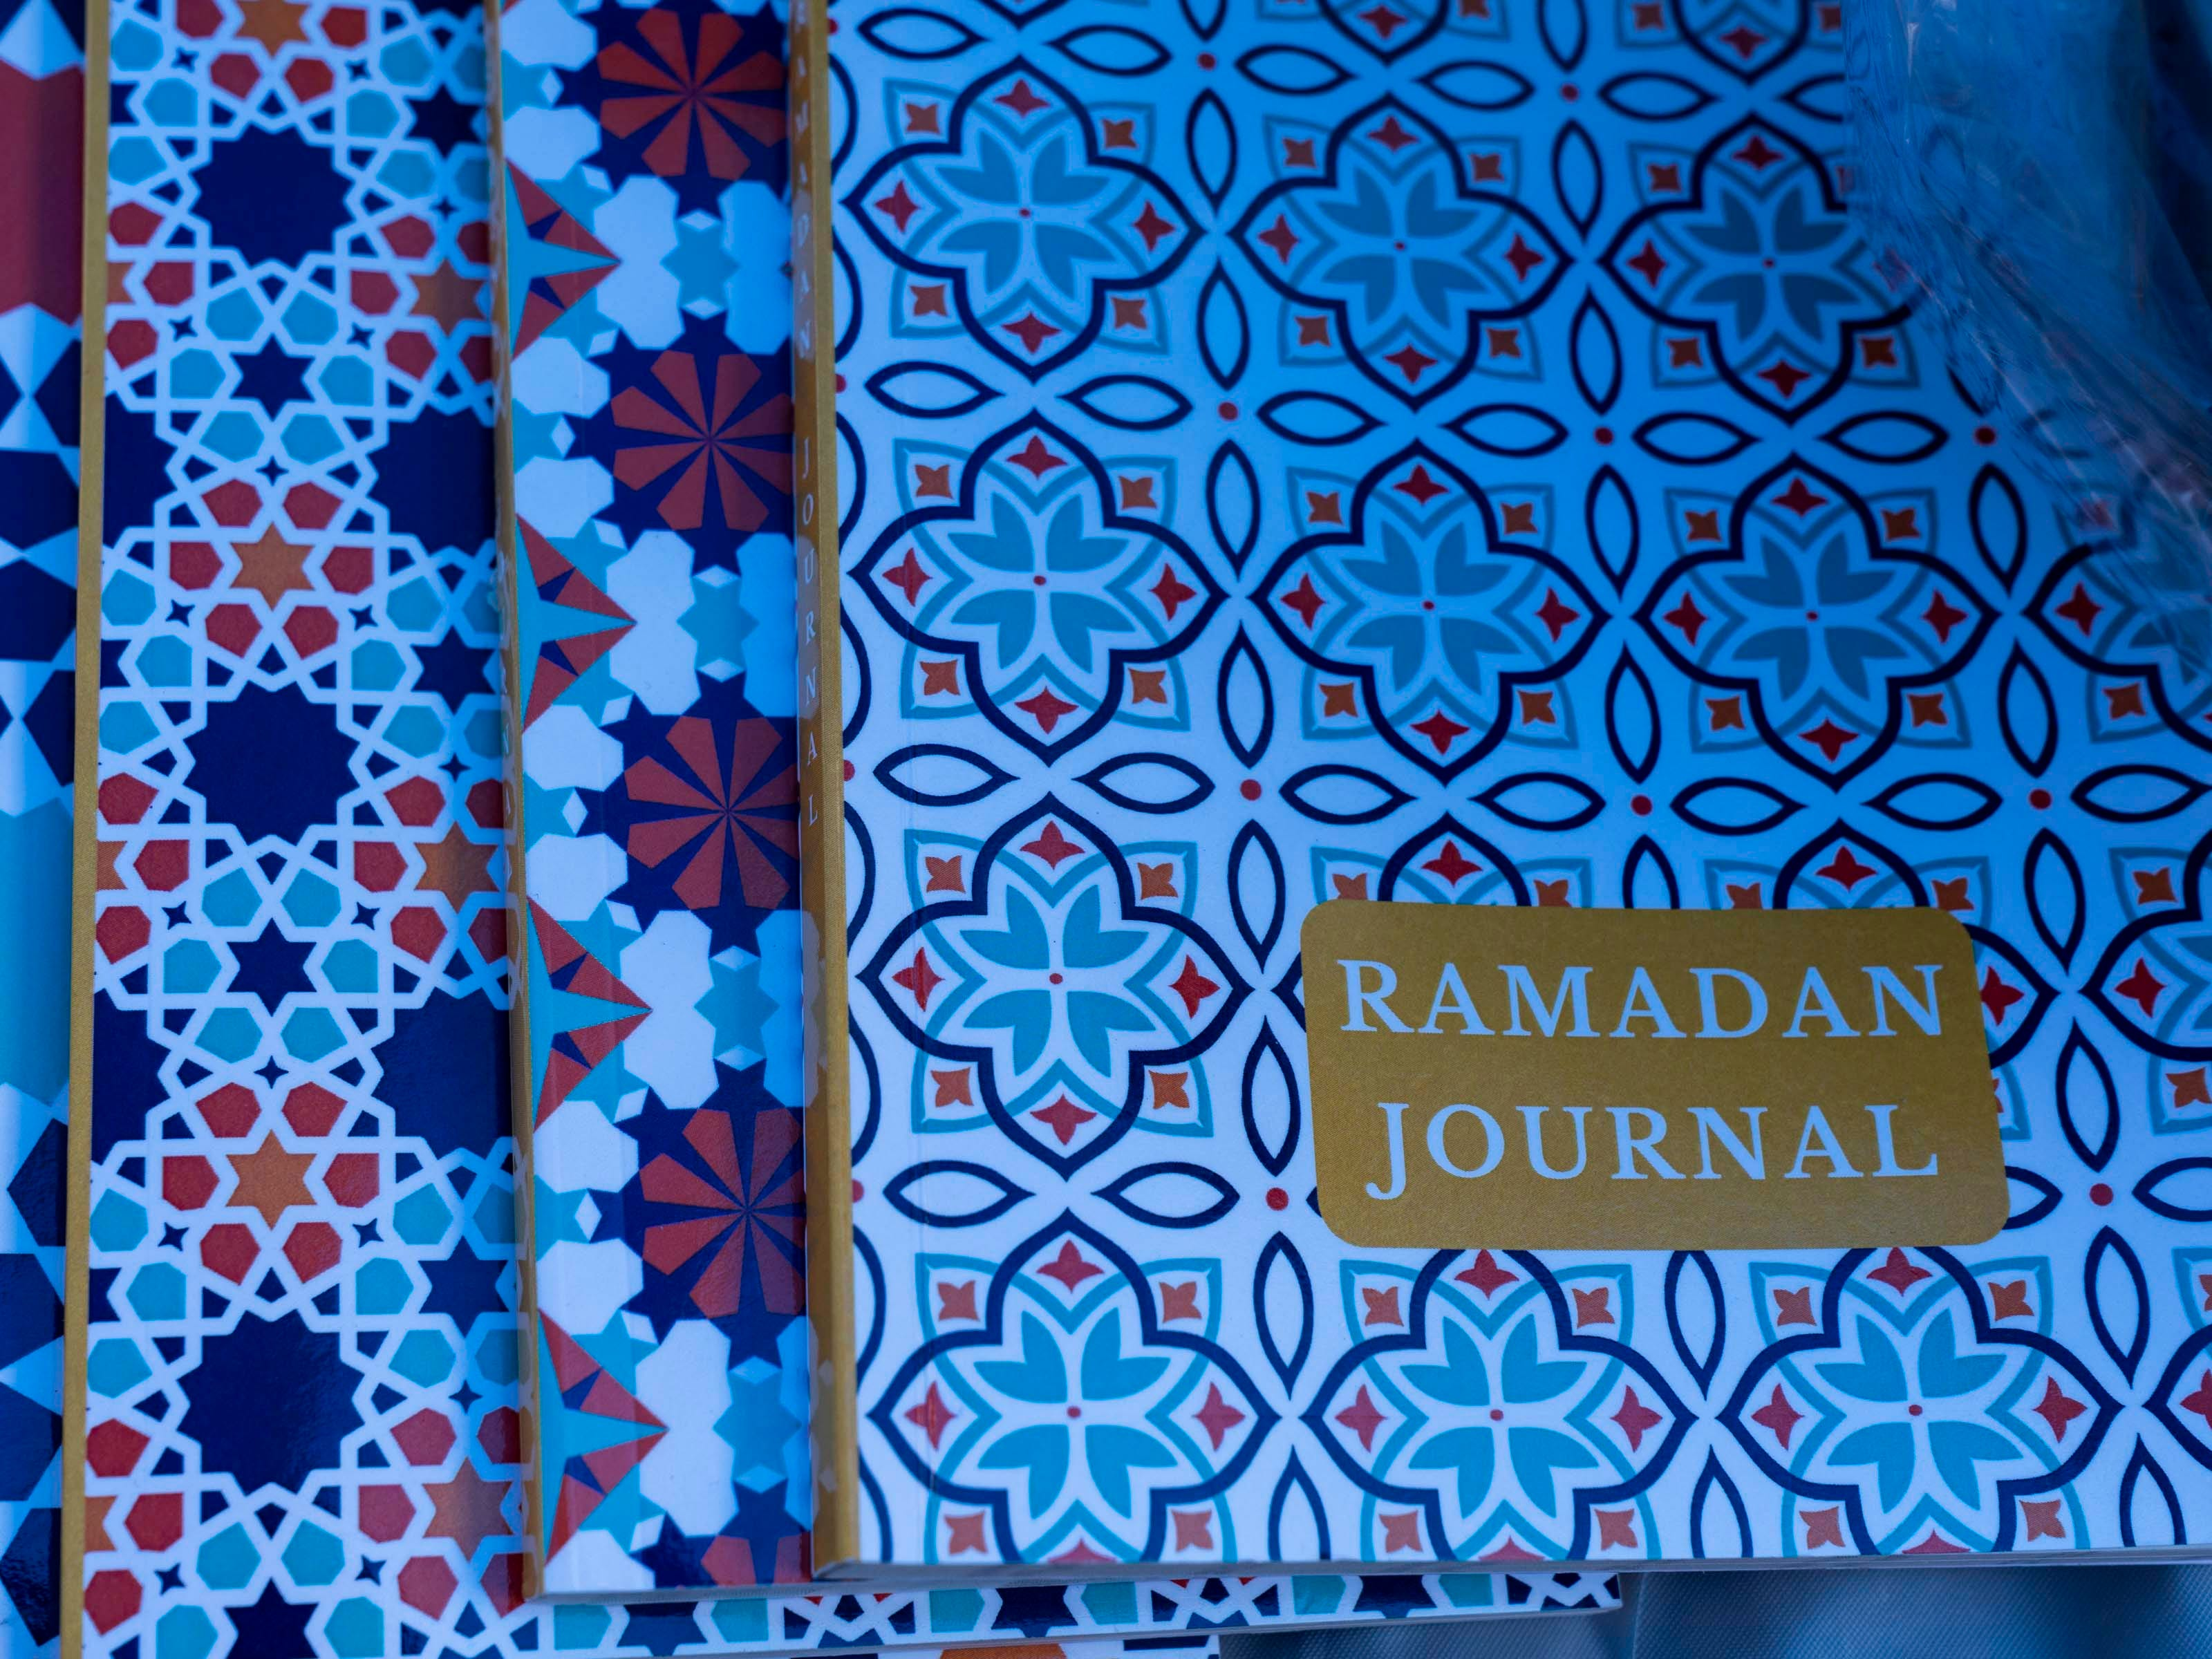 Ramadan journals are displayed for Muslim community shoppers to purchase for Ramadan at Tempe Islamic Cultural Center.